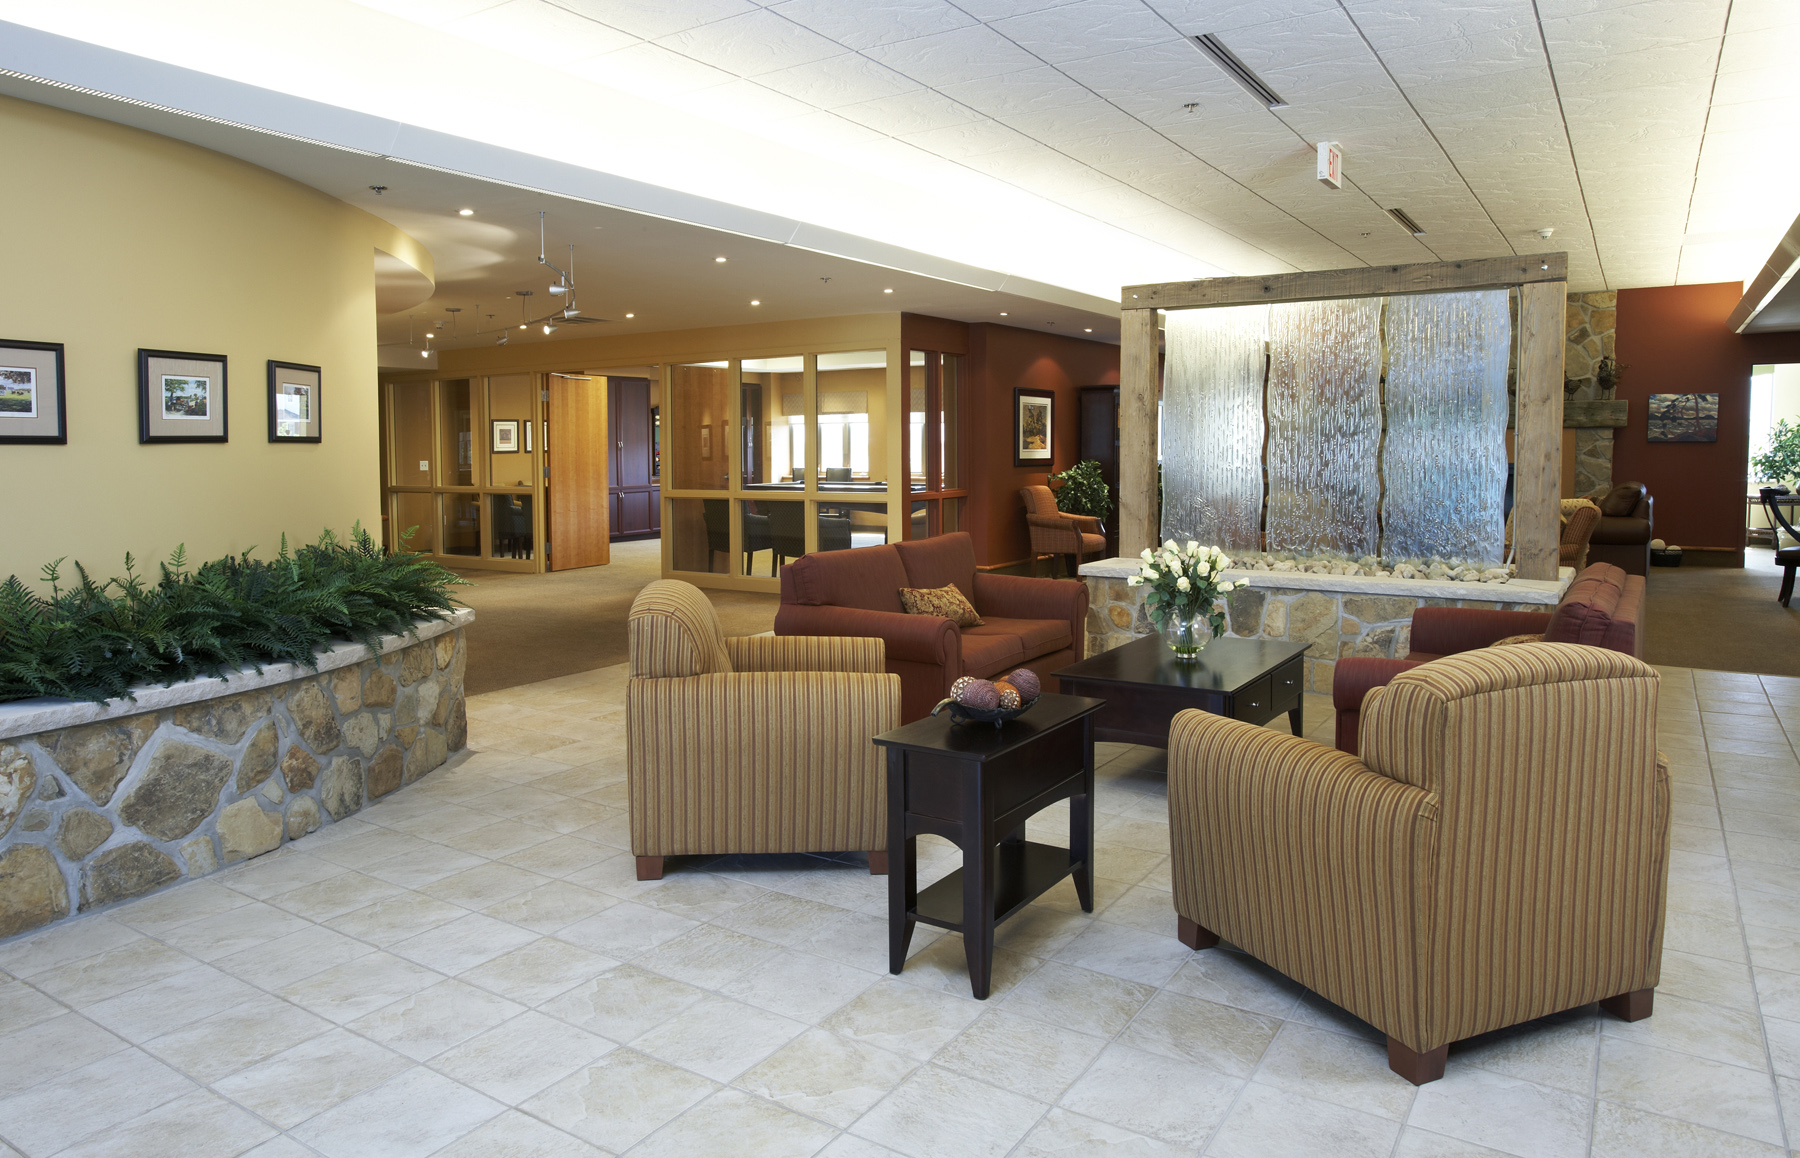 Parkwood Suites Supportive Housing